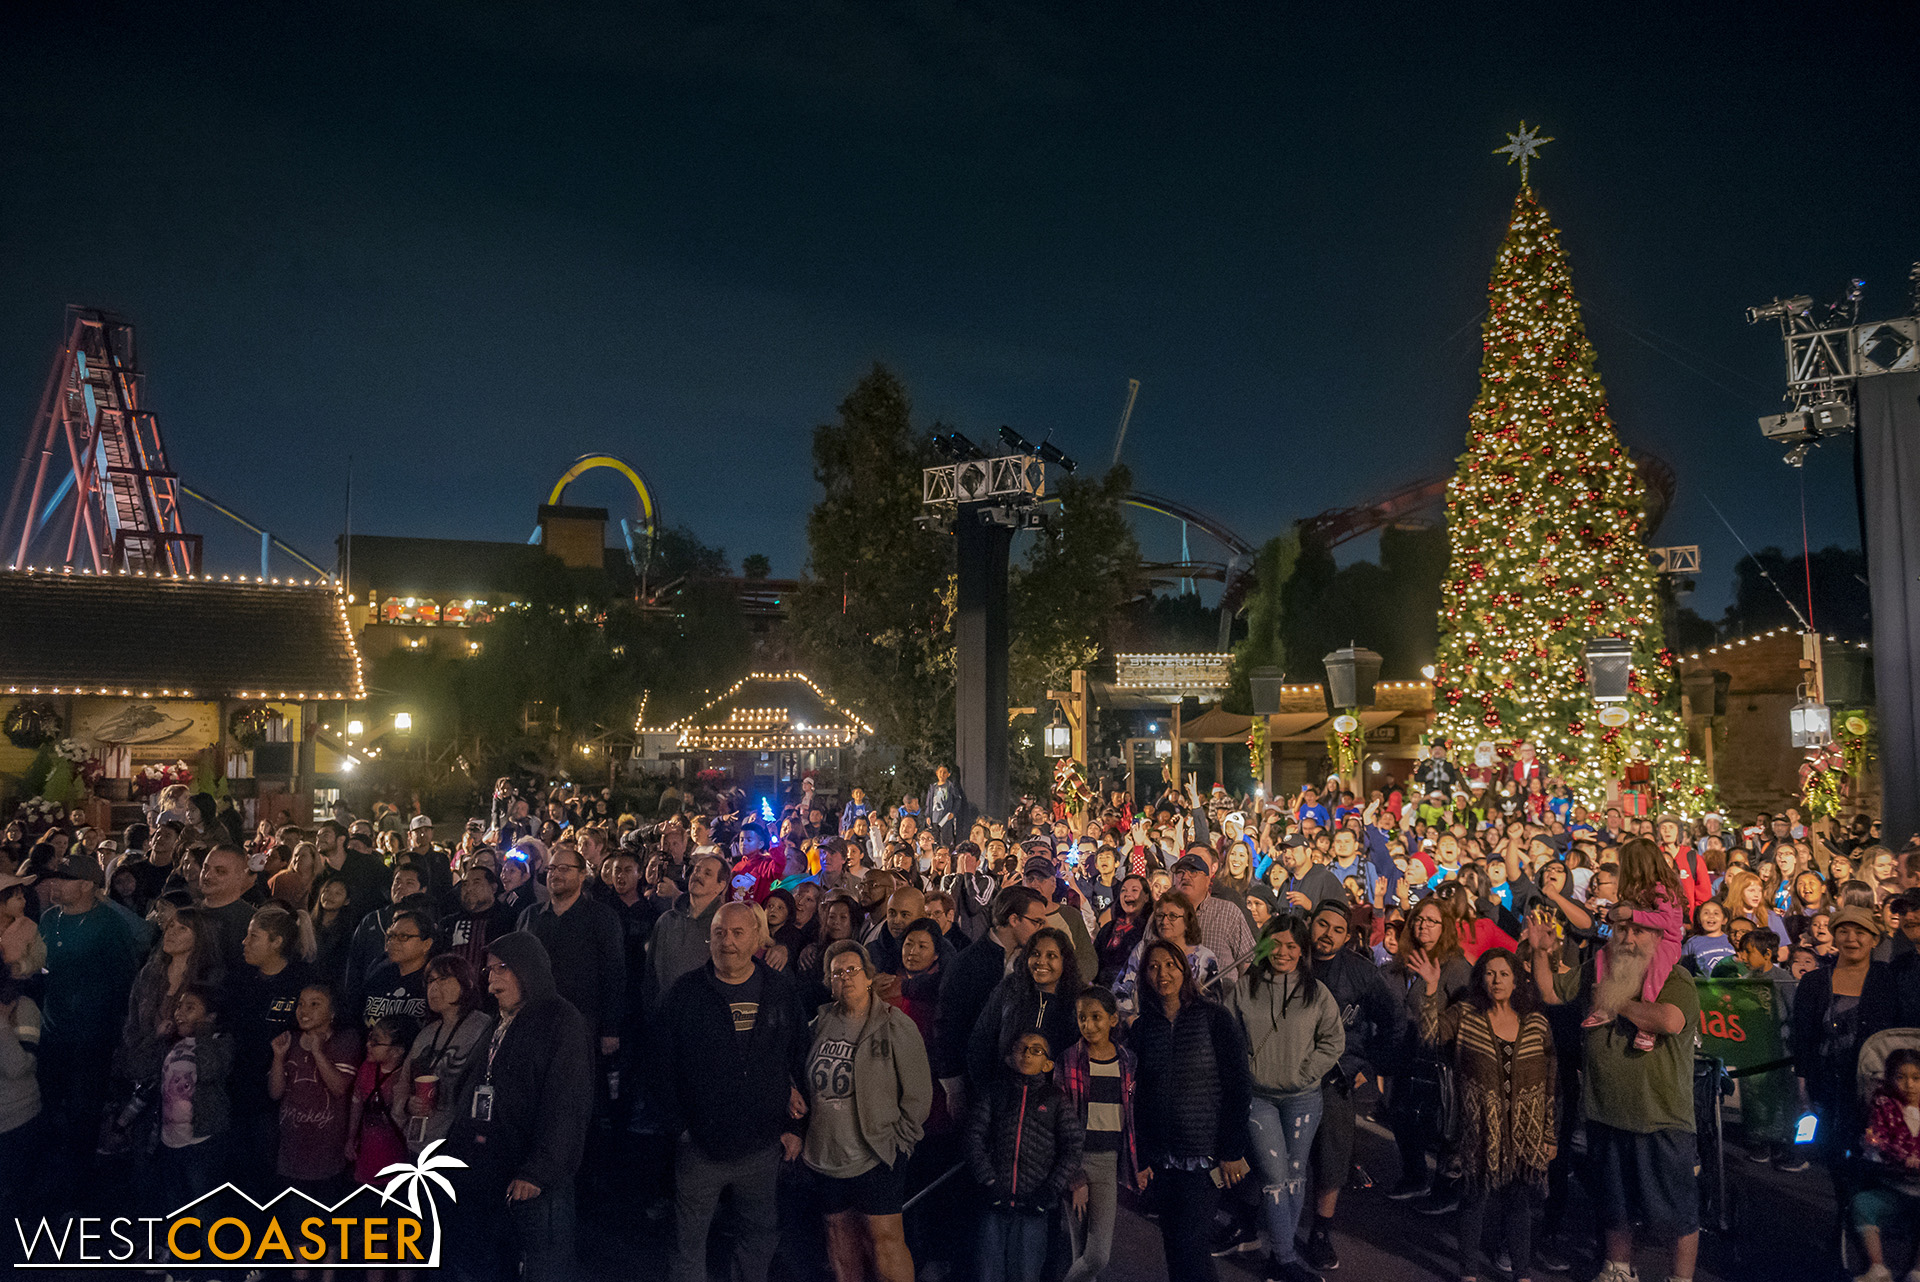 The 600 children from the Boys and Girls Club and their families pose for a group photo for Knott's.